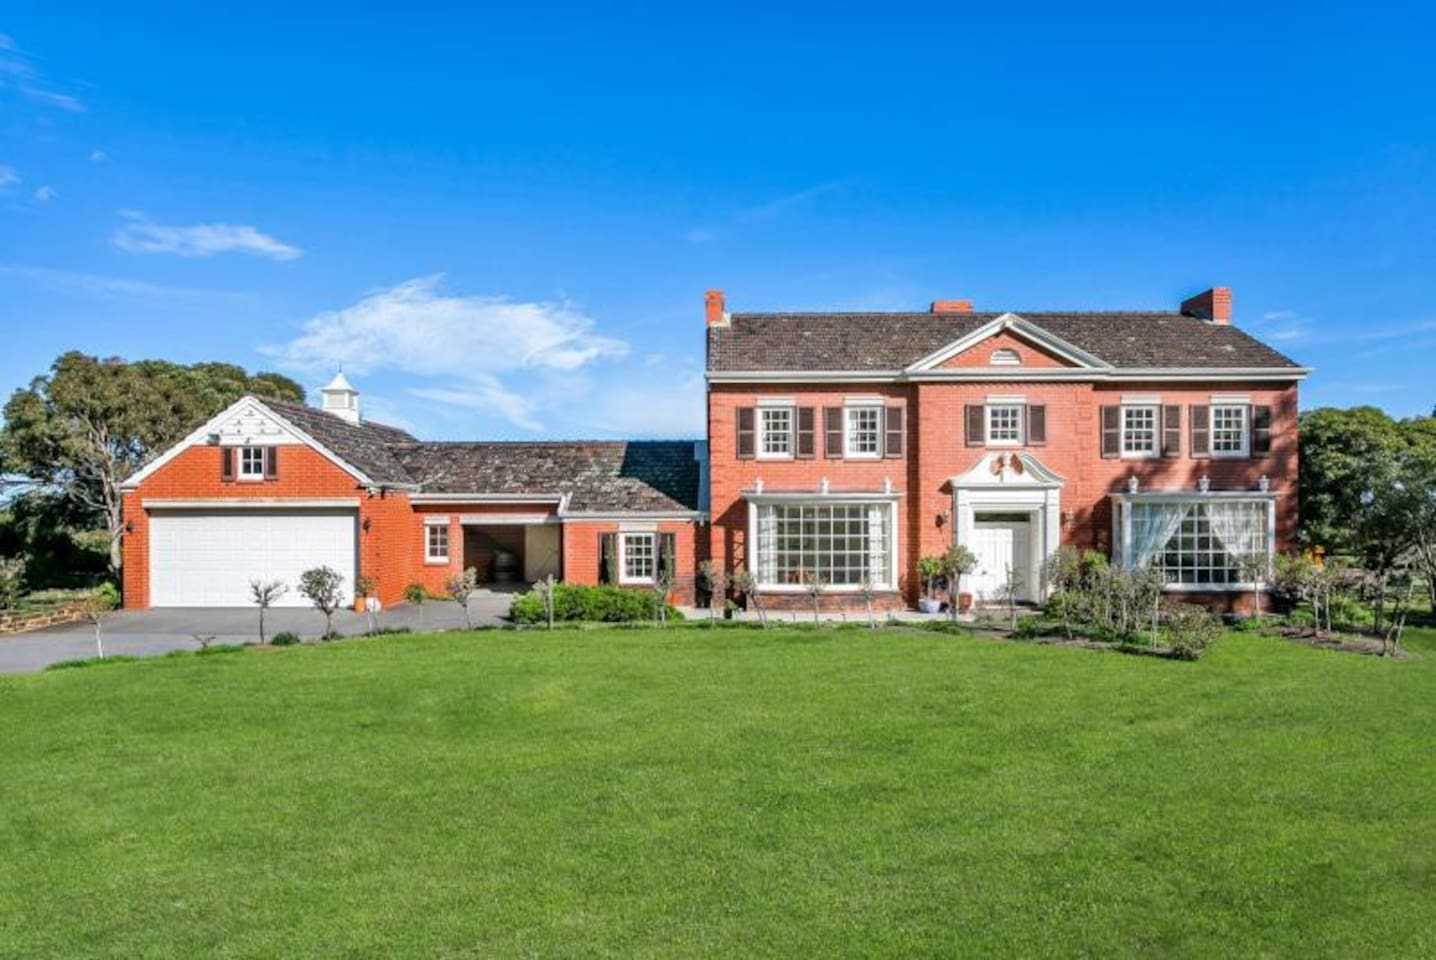 70s' Master built solid brick home approx. 553m2, harmoniously combining opulent formal living with relaxed casual options, lofty ceiling heights and generous room dimensions rarely seen today.